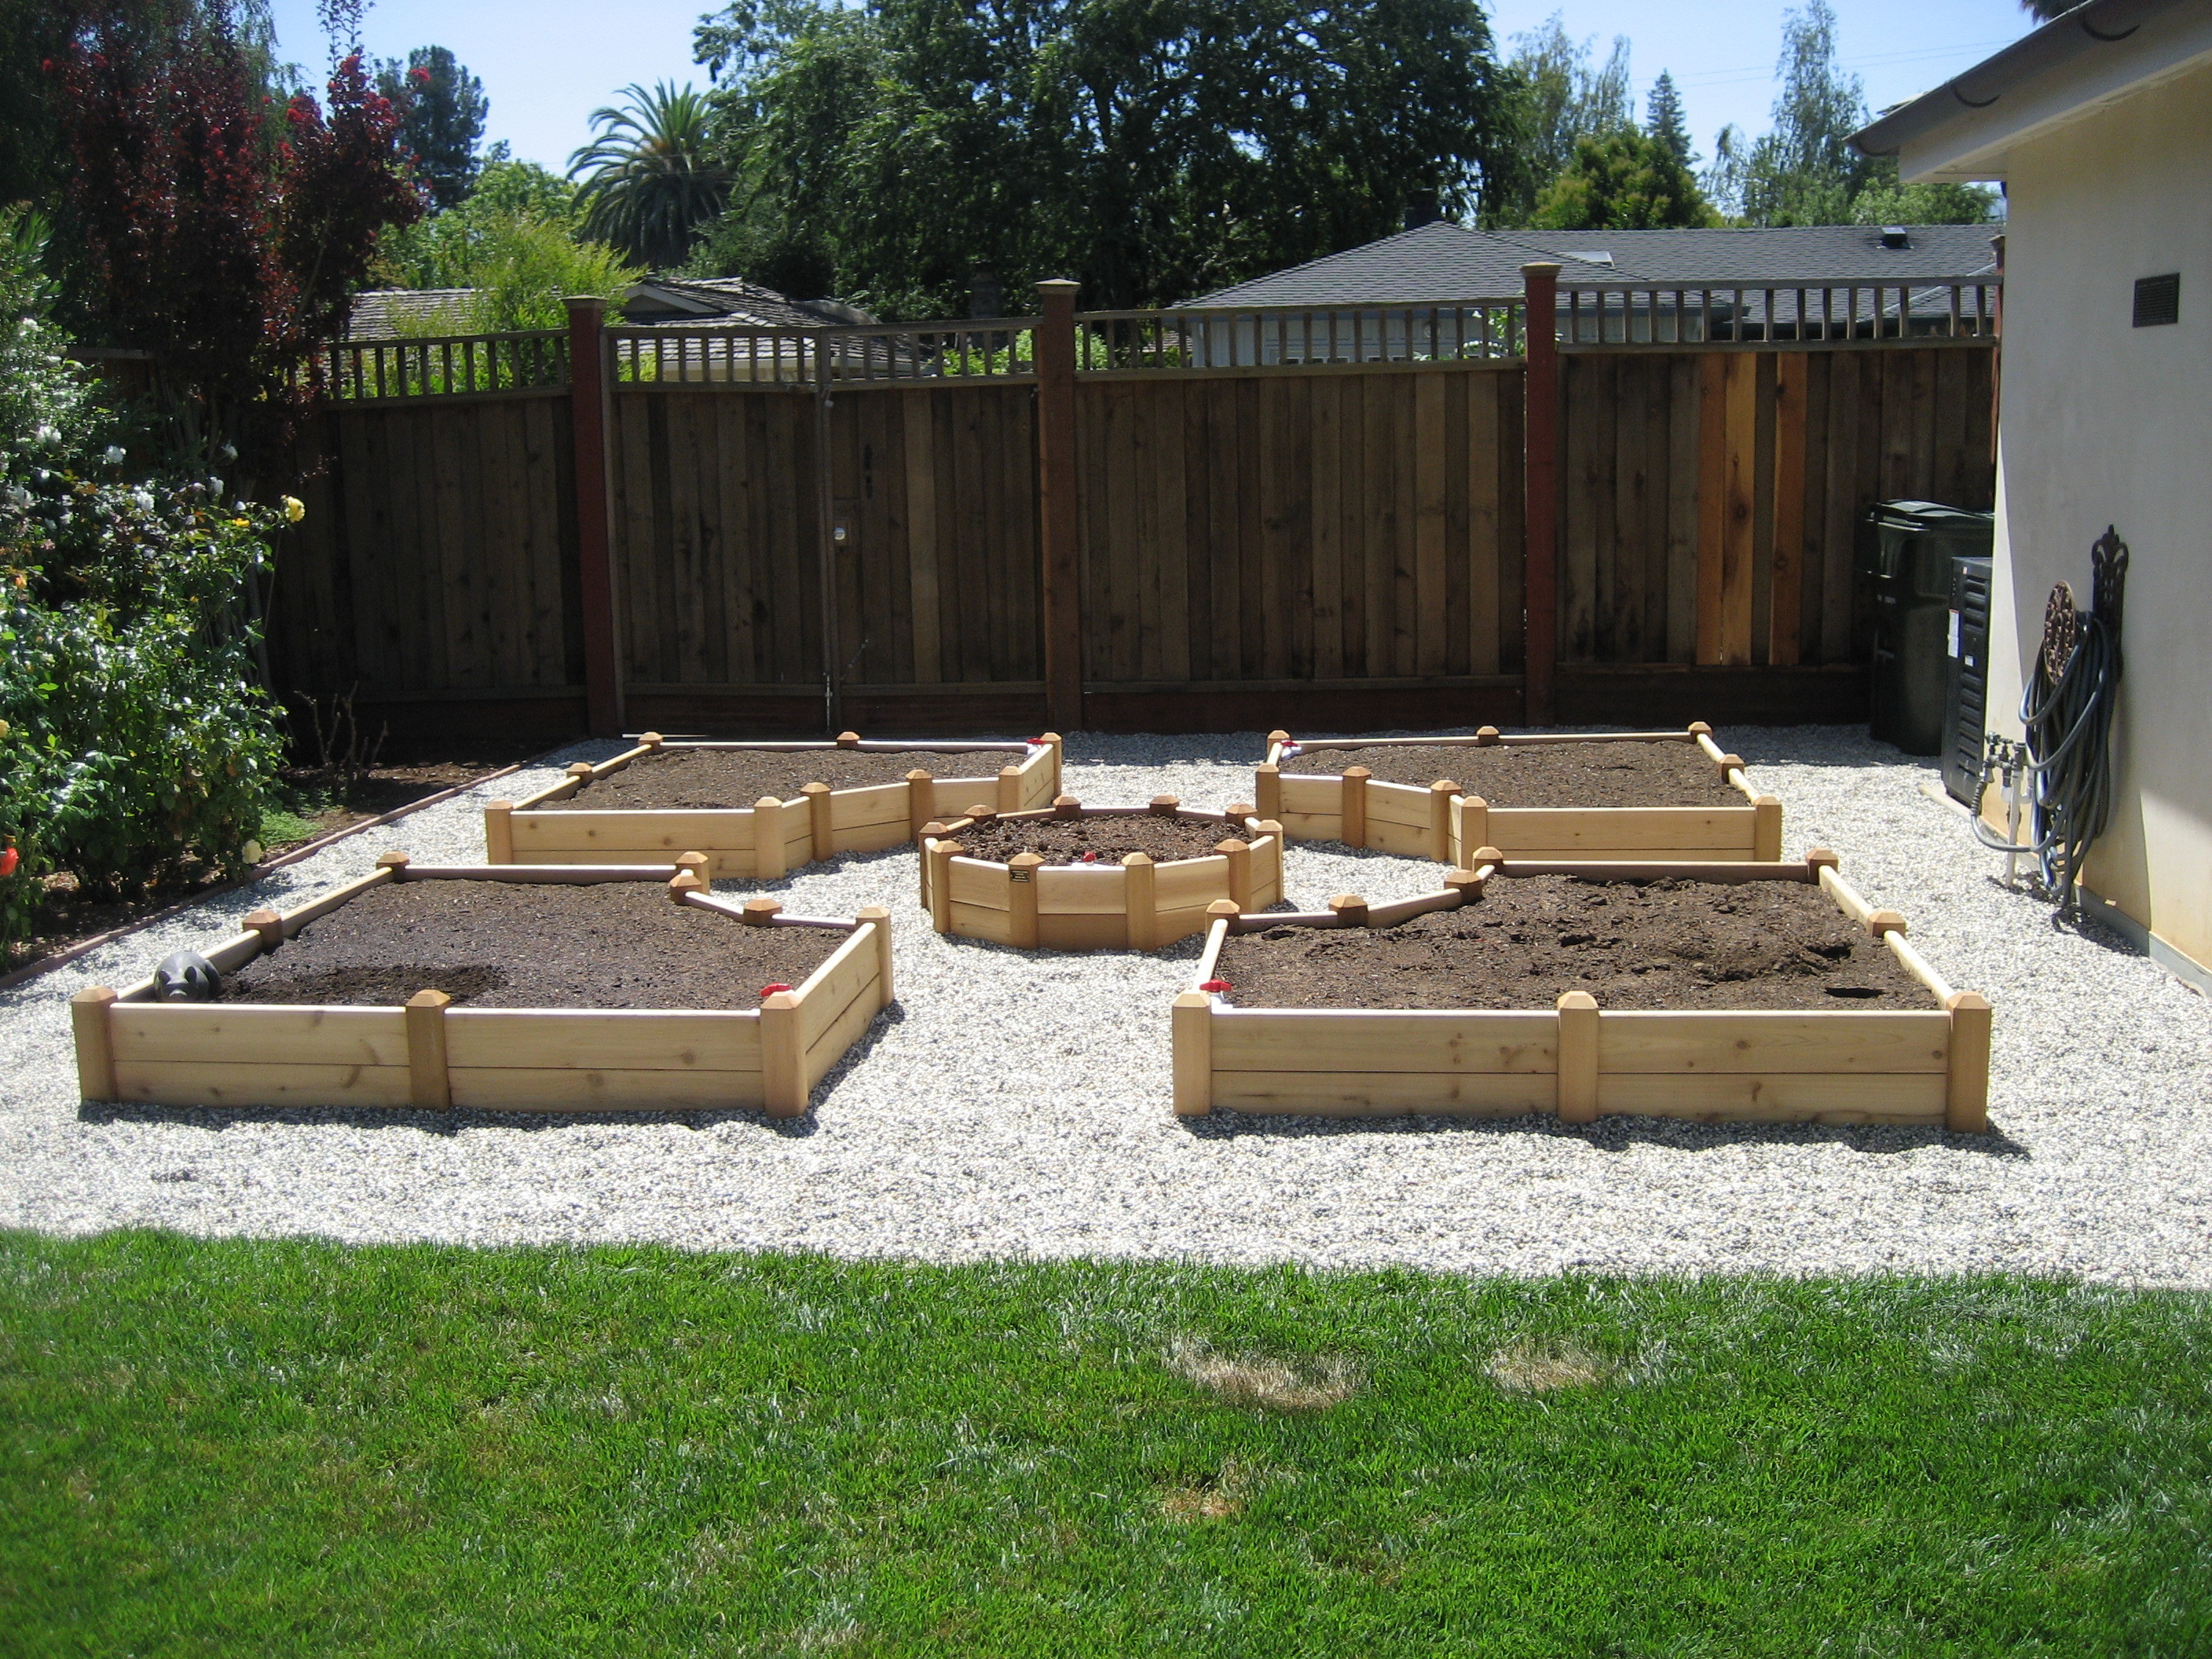 Raised garden beds ideas for growing images for Raised bed garden designs plans